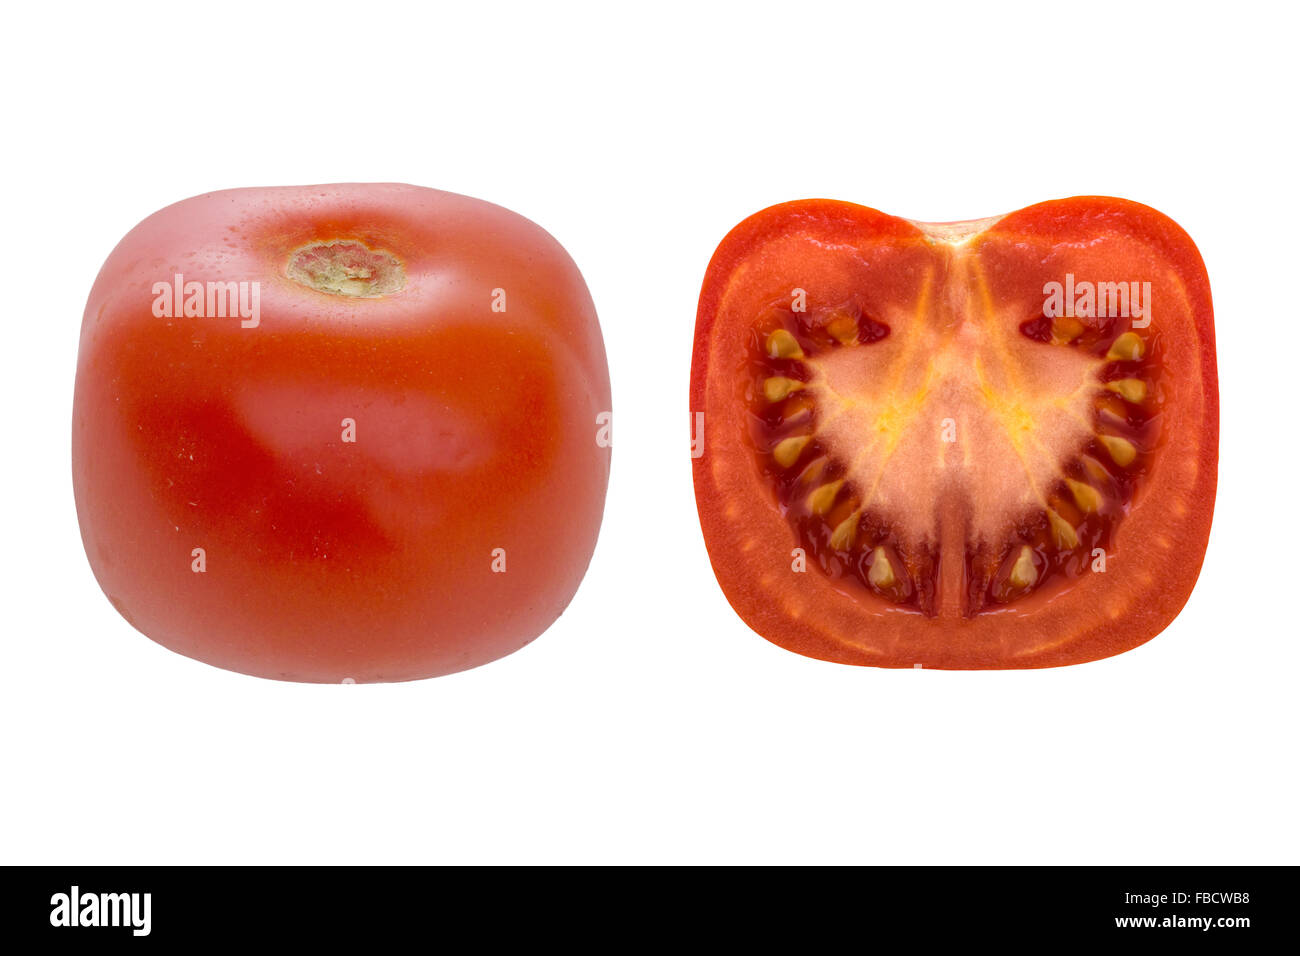 Square tomato. Genetically modified food. Isolated on white. - Stock Image